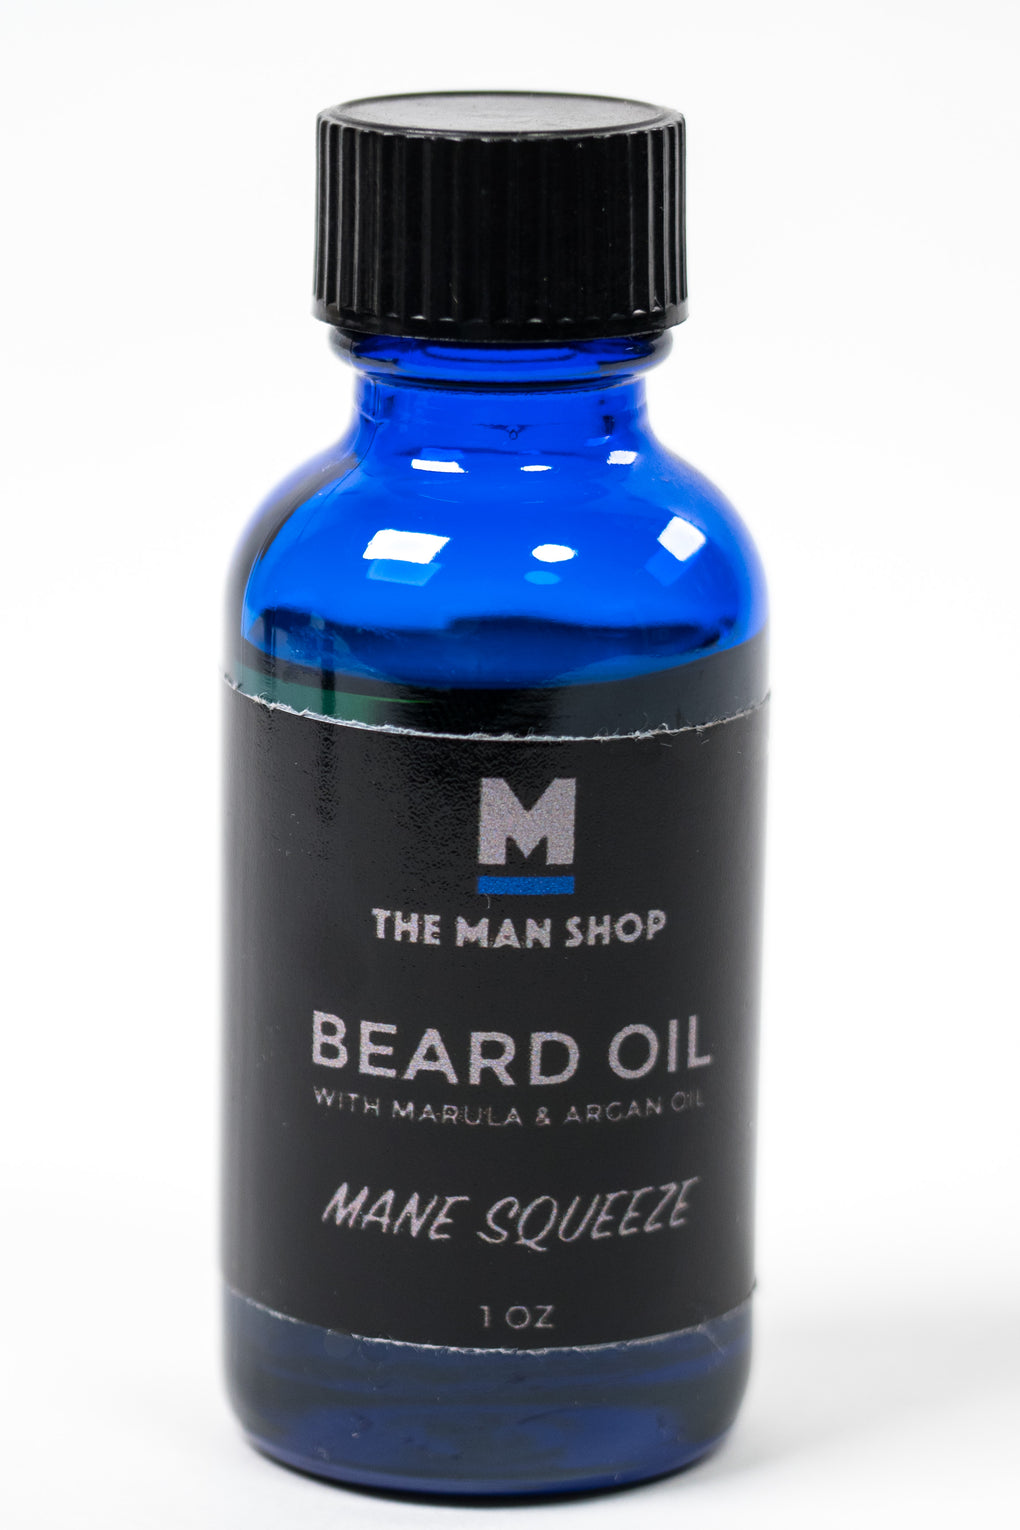 The Man Shop Mane Squeeze Beard Oil at Consigliere